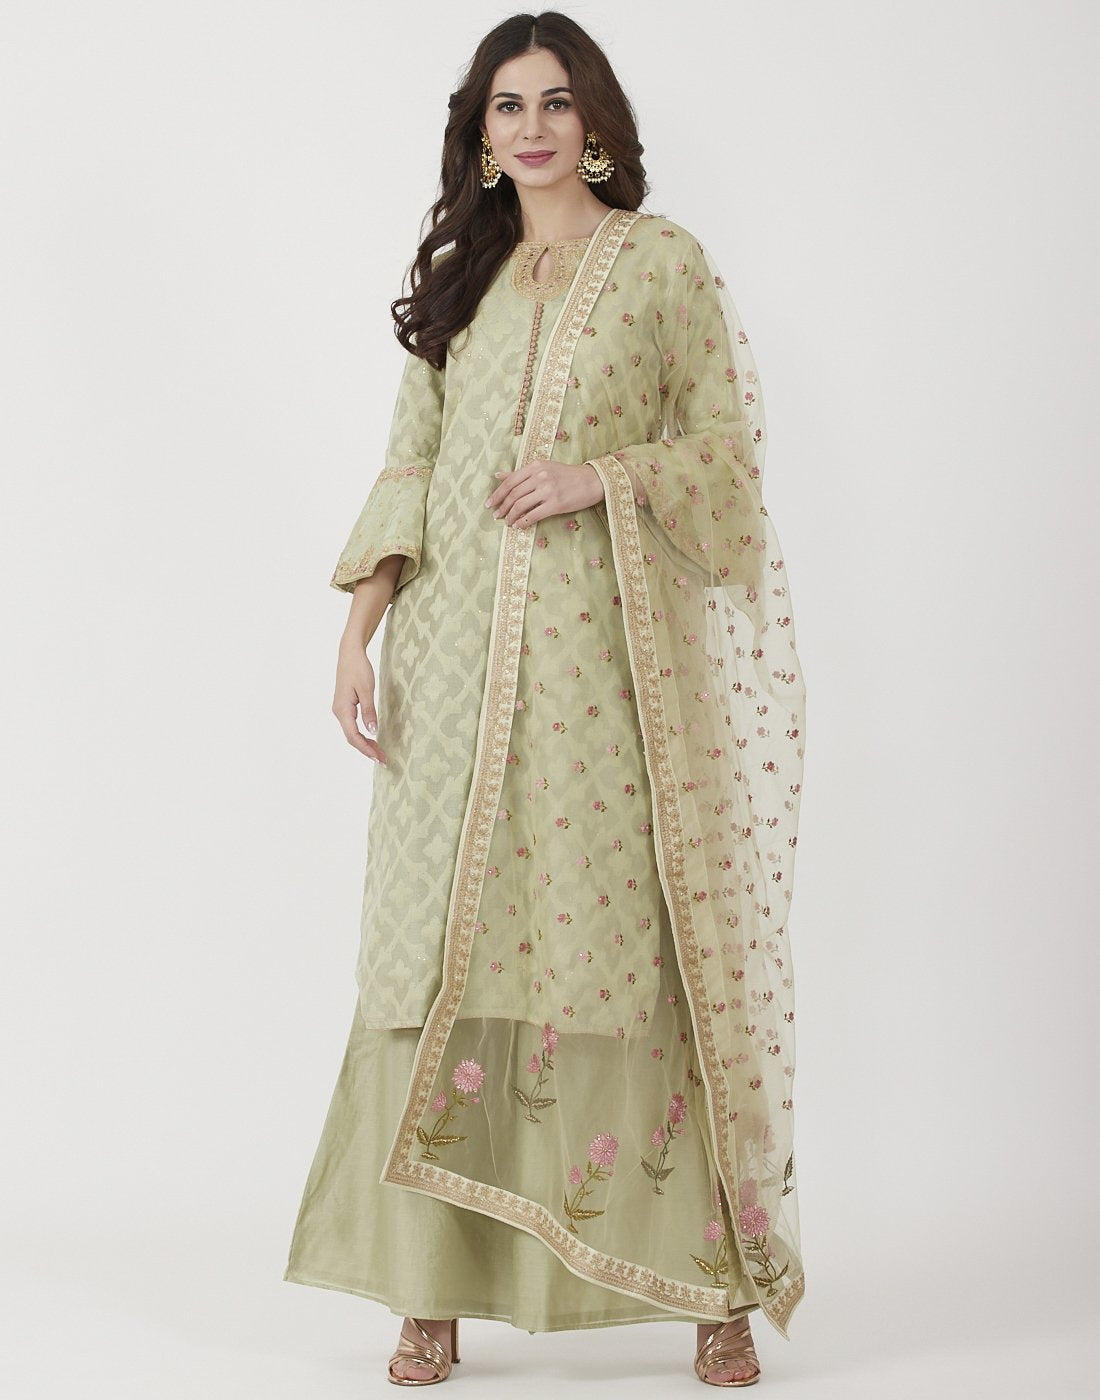 Dull Green Cotton Chanderi Salwar Kameez